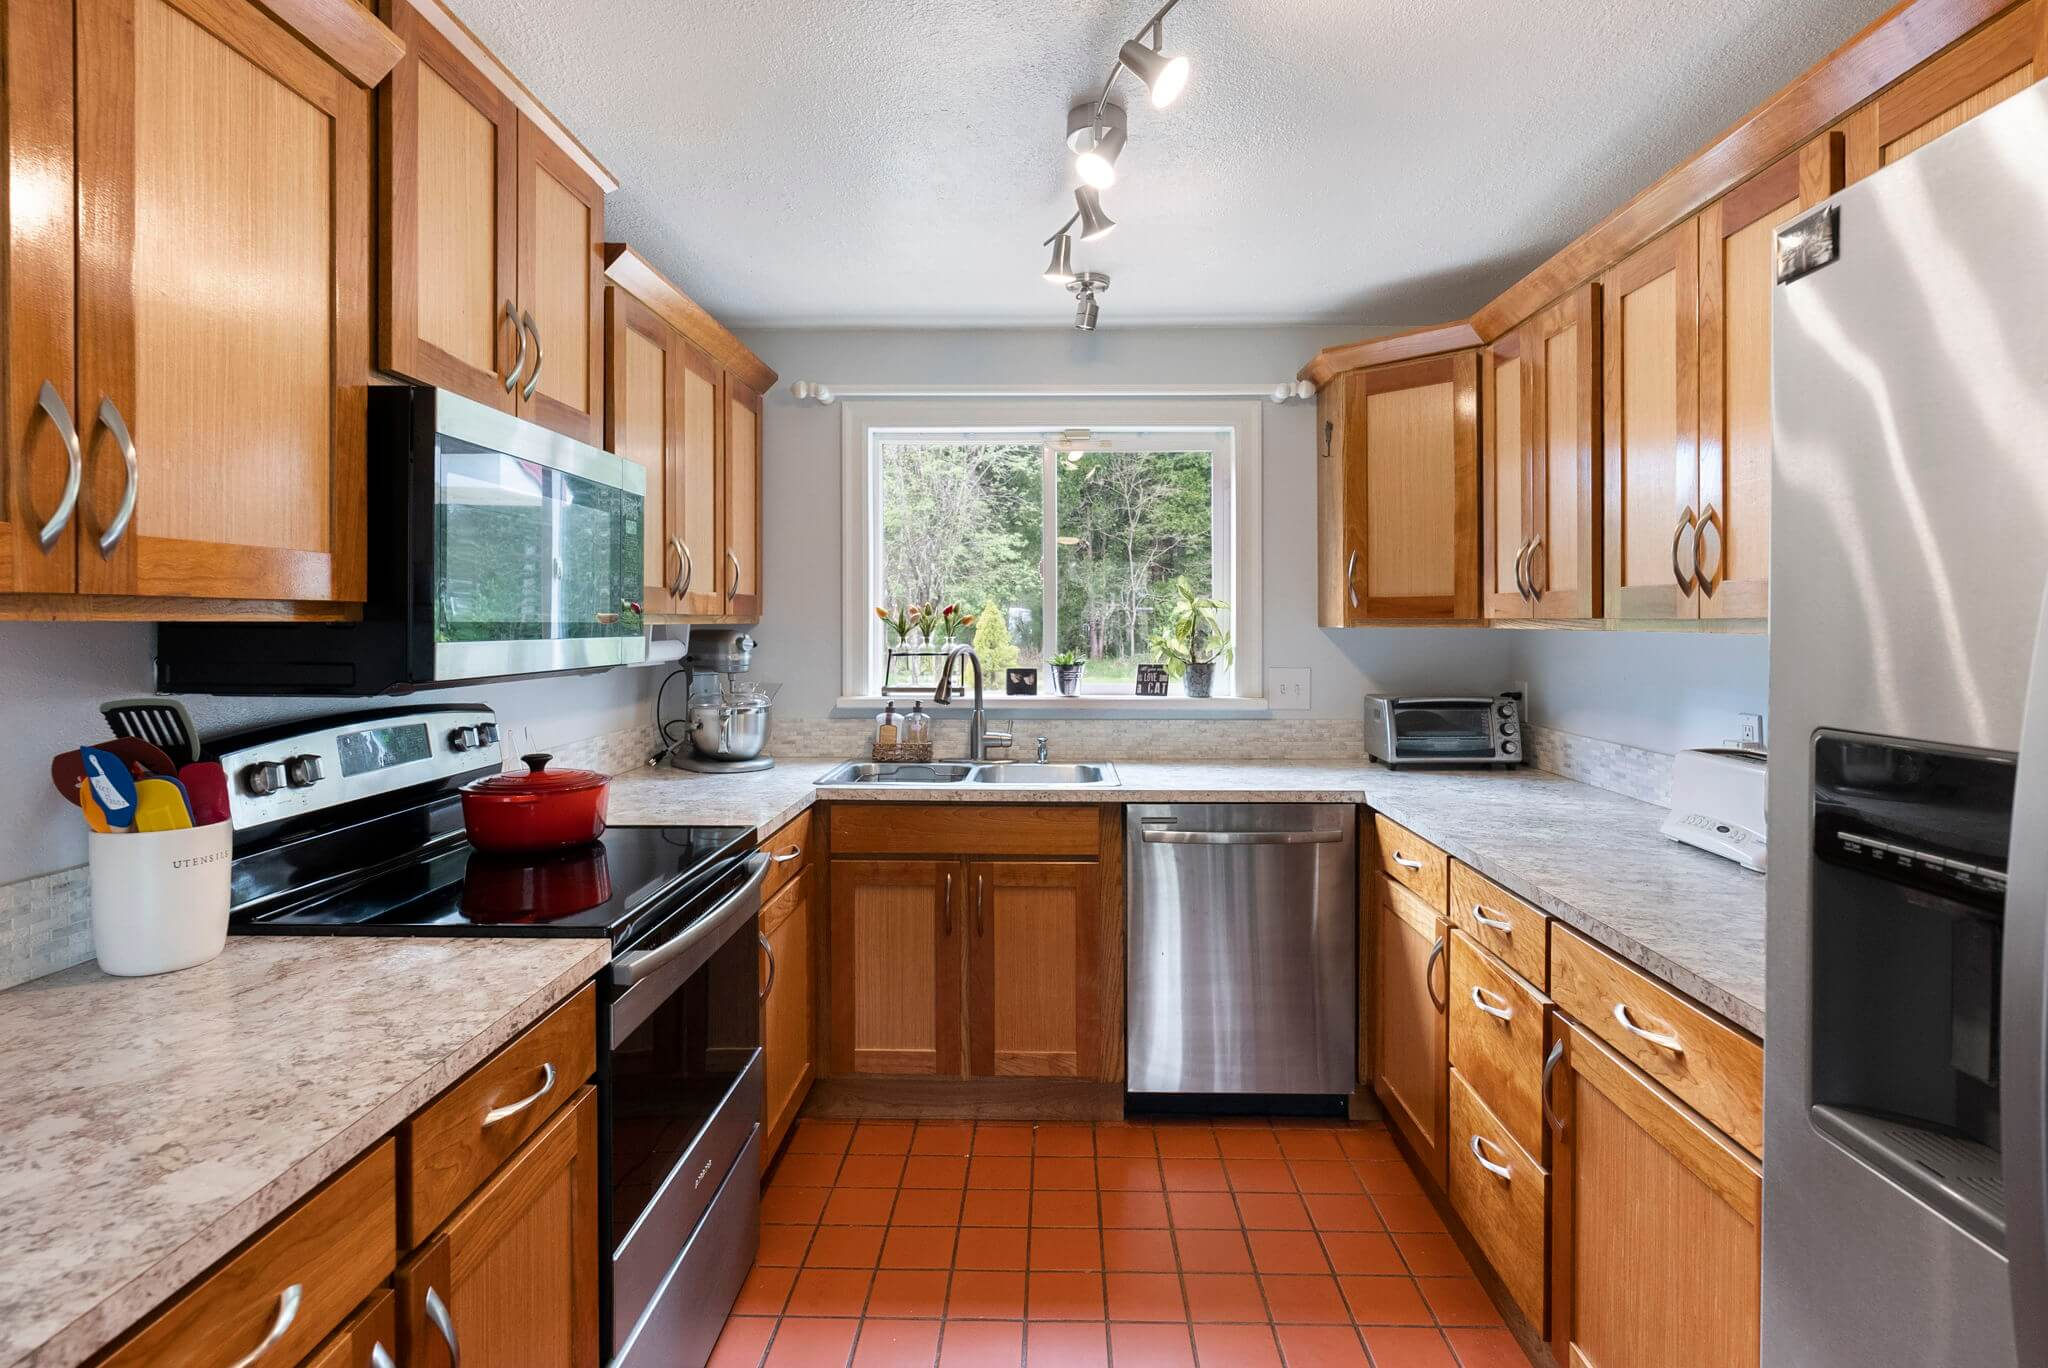 Updated kitchen with cherry cabinets and stainless appliances